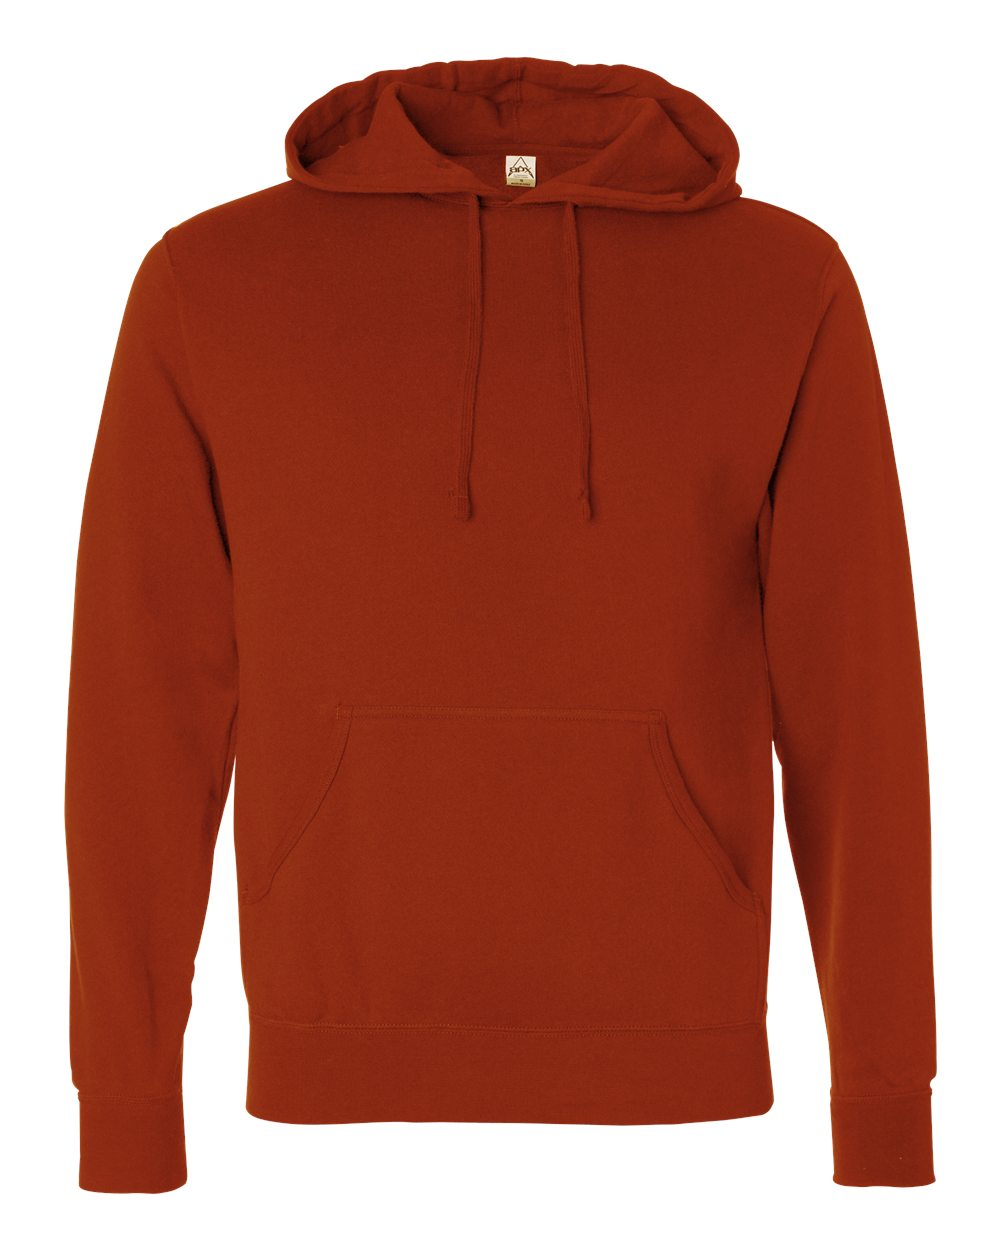 Independent_Trading_Co._AFX4000_Red_Front_High.jpg